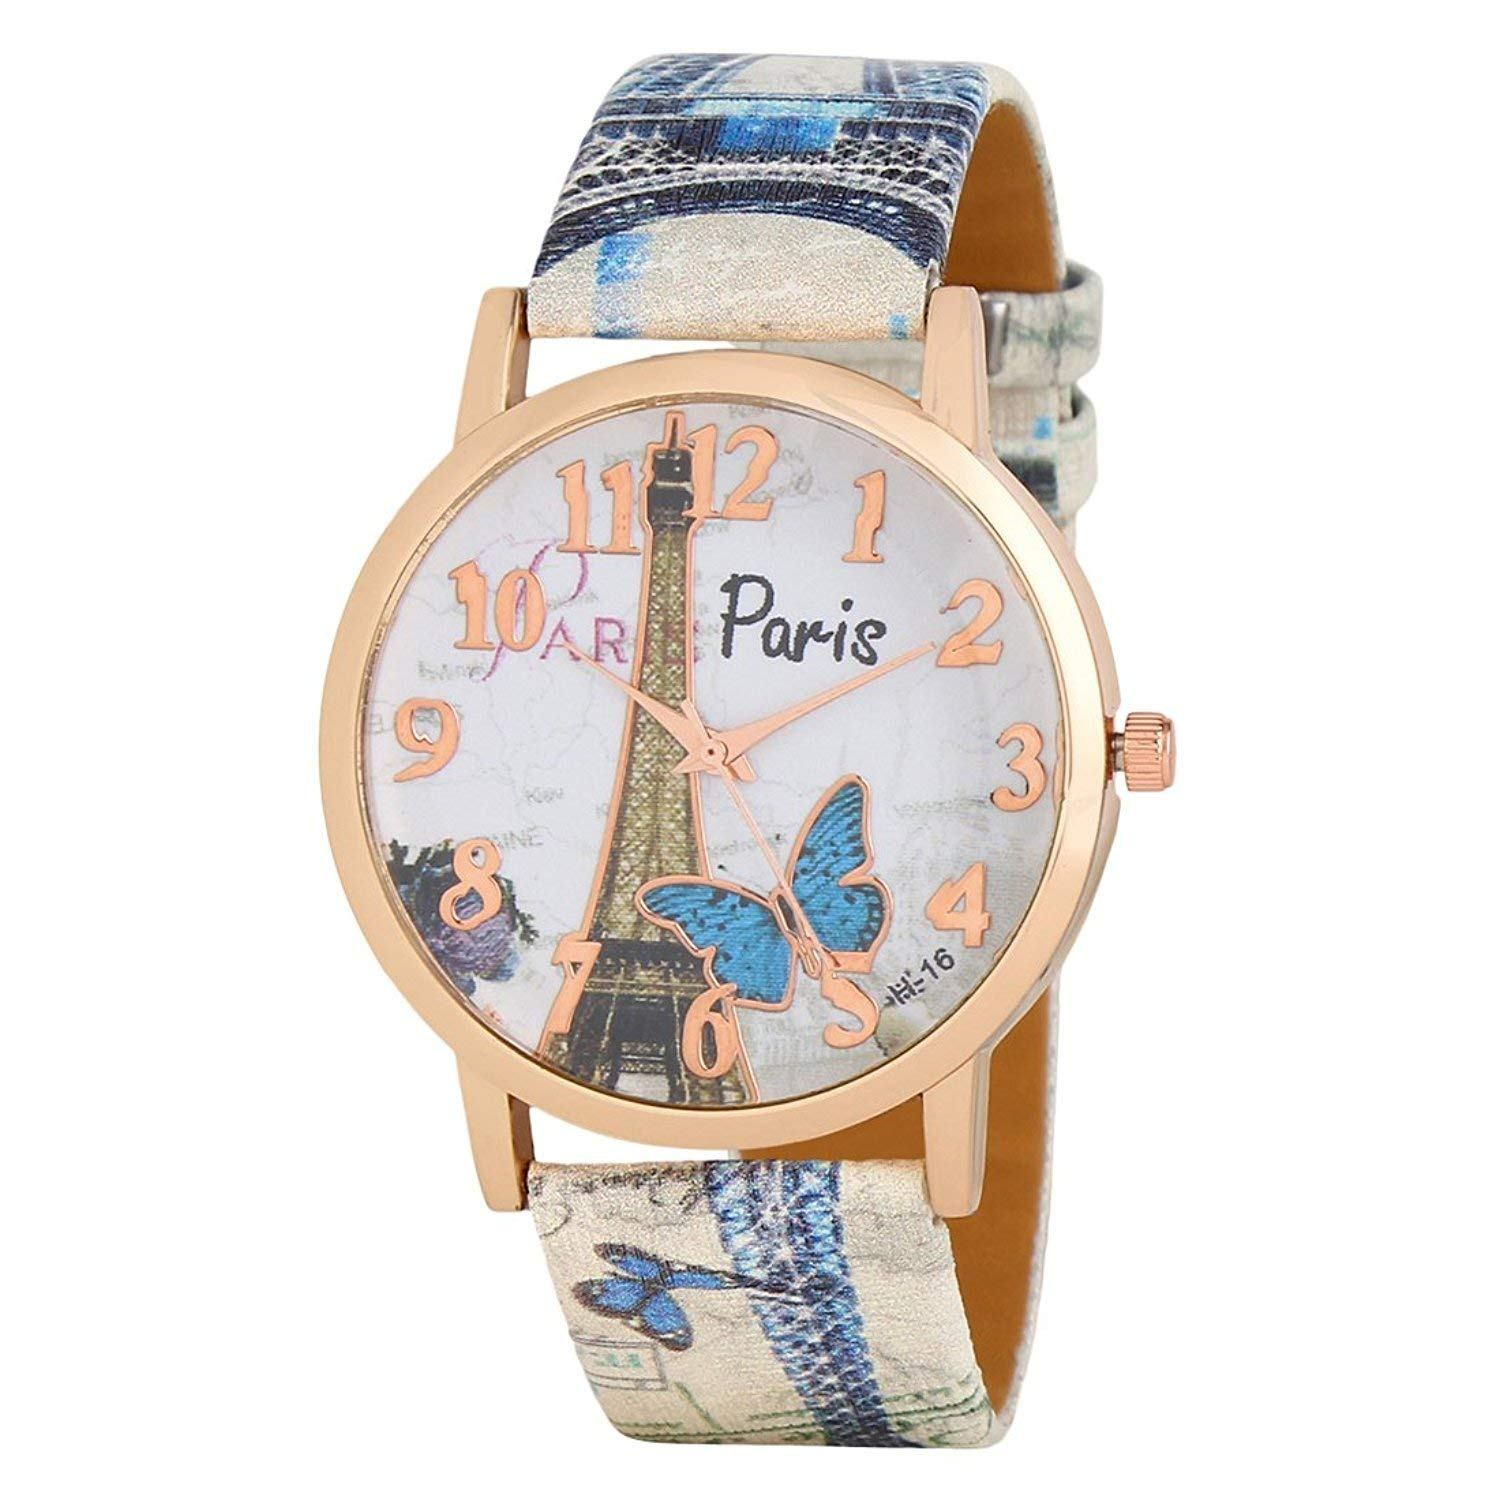 Buy Watches For Girls Latest Ladies Watches Below 500 Rupees Watches For Womens Latest Low Price Style 2 Online At Low Prices In India Amazon In